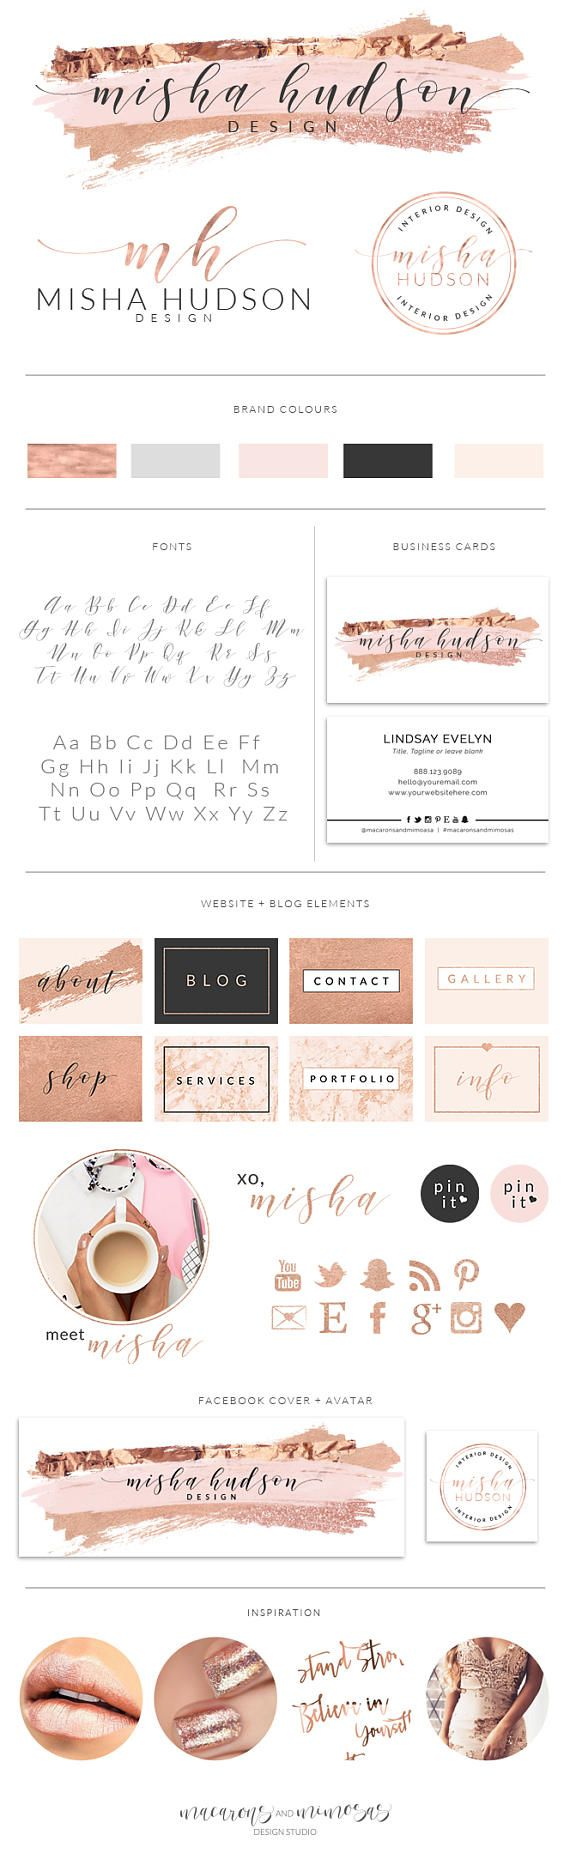 Pre made branding kits are the perfect solution to polish your brand professionally, at a super affordable price! The are perfect for photographers, interior designs, event & wedding planners, small business and boutiques, makeup artists, bloggers and more. ❥❥❥❥ WHAT IS INCLUDED